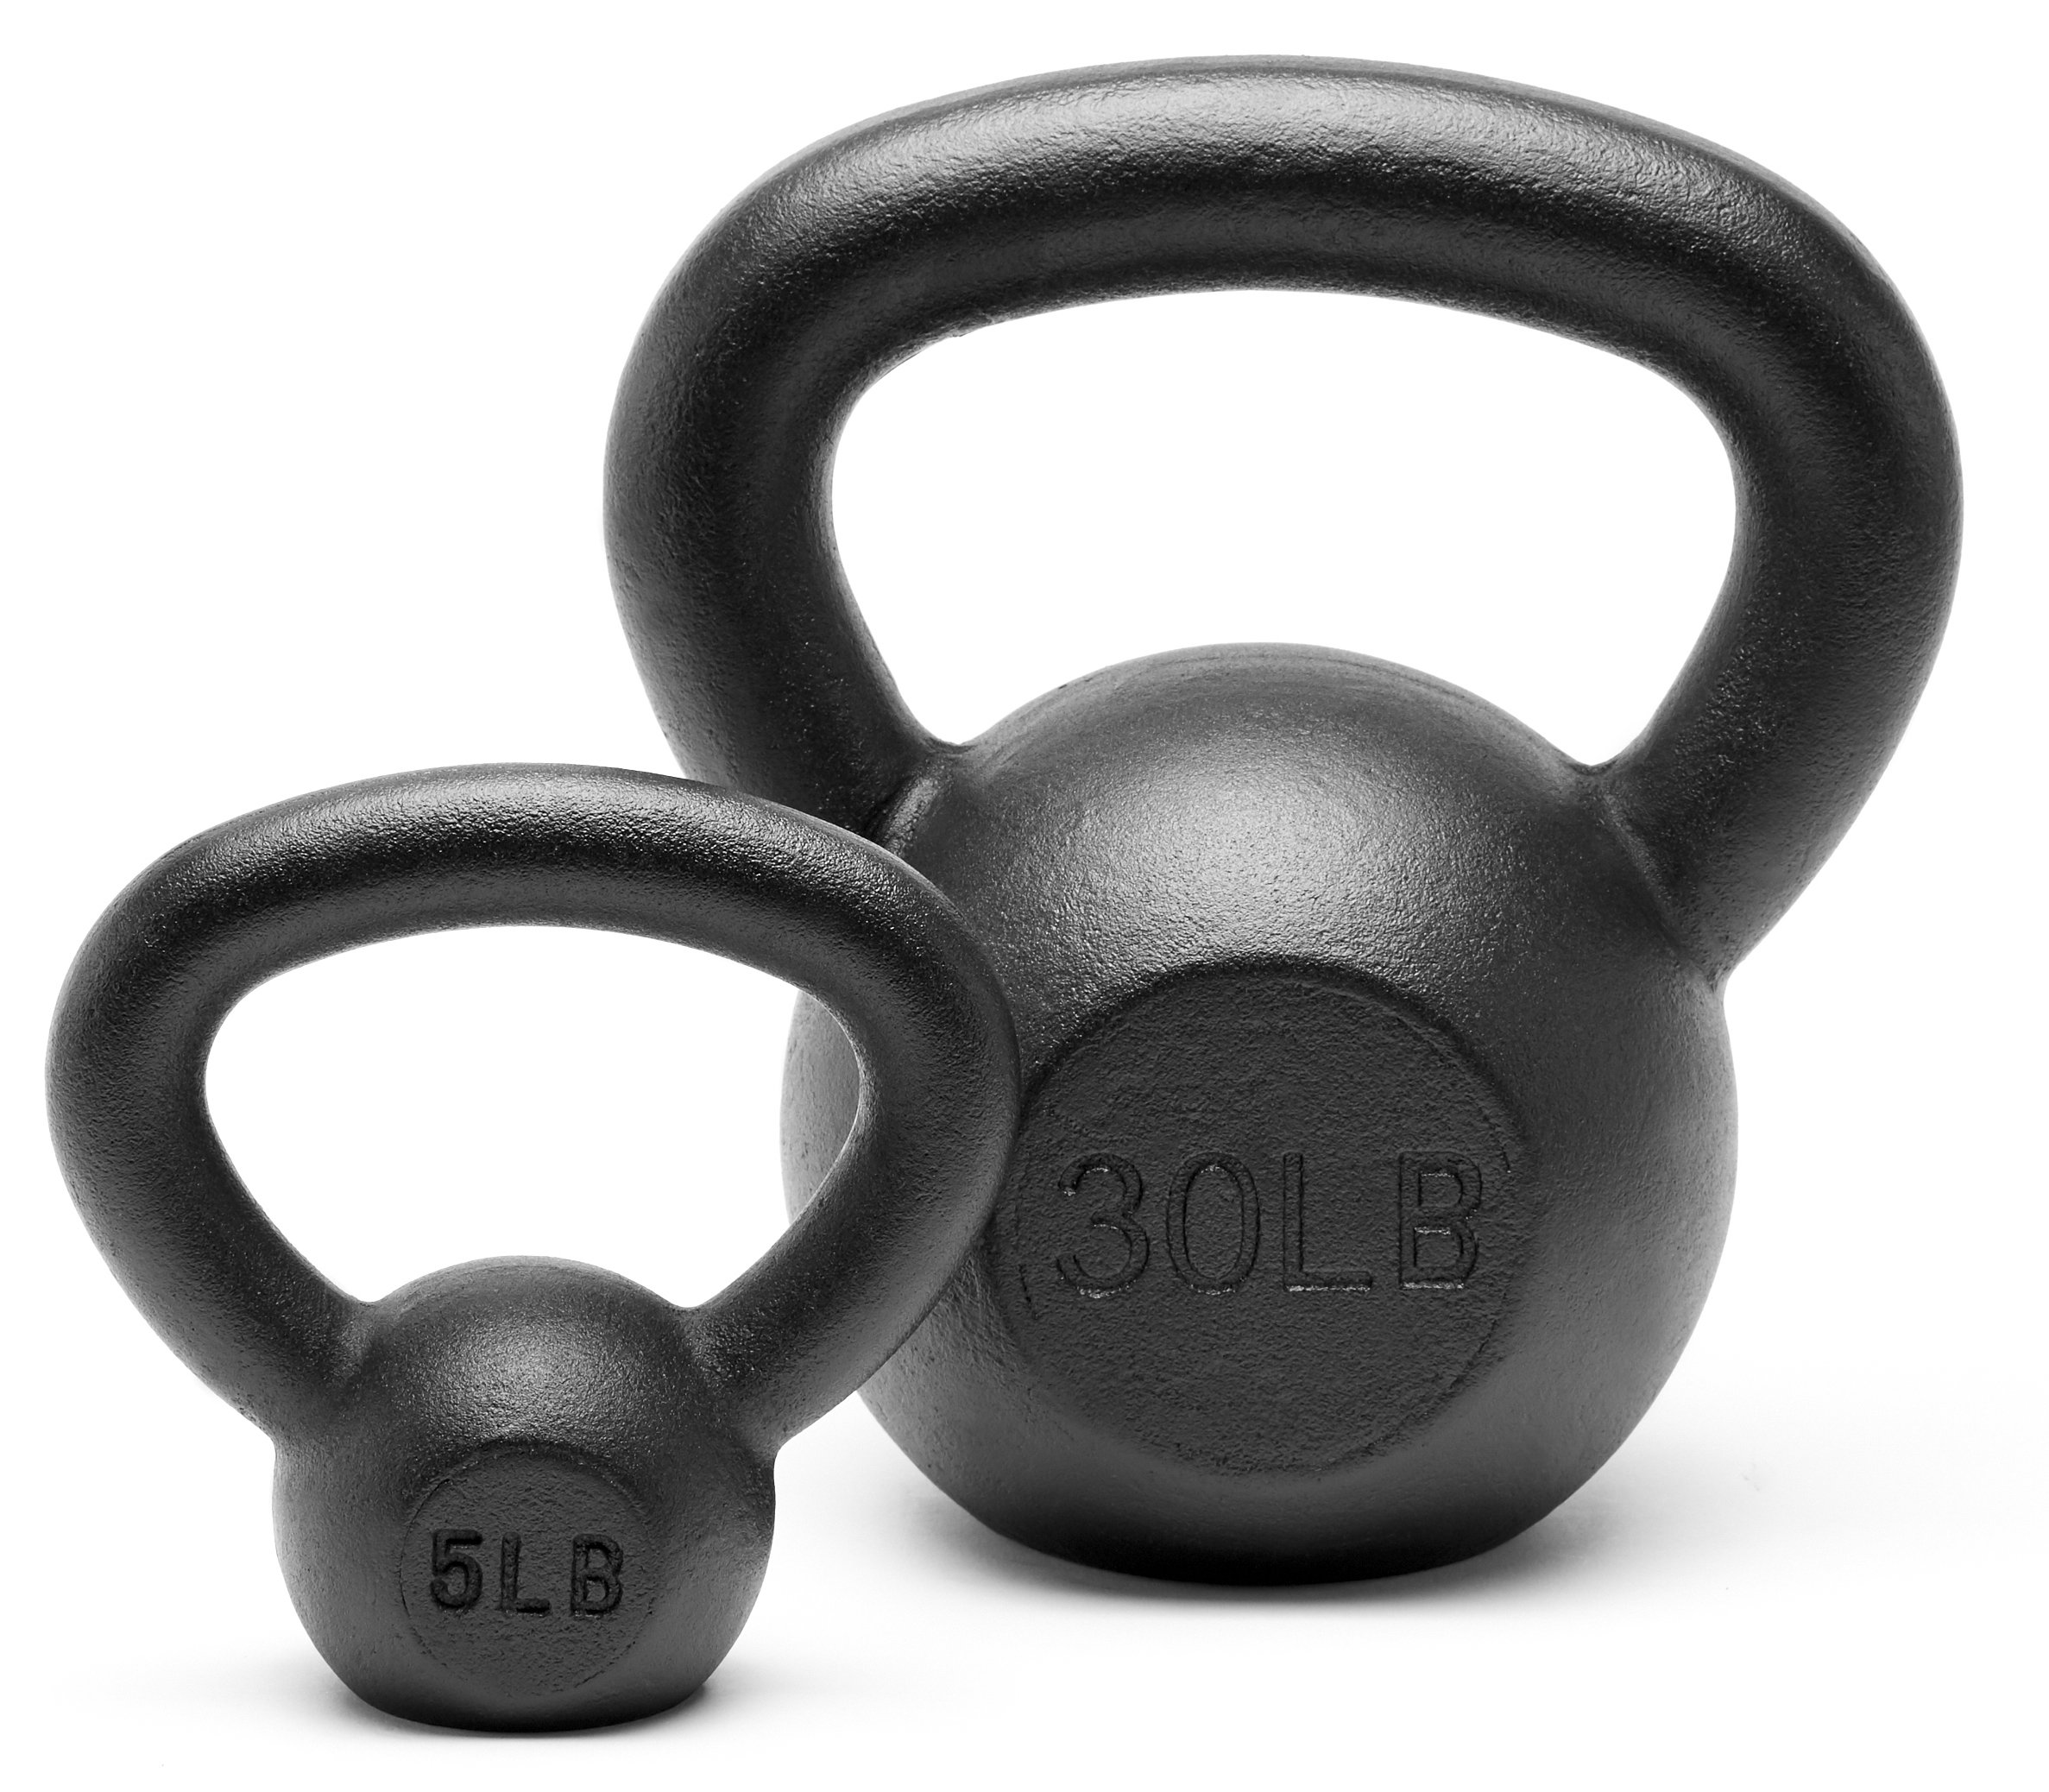 Unipack Powder Coated Solid Cast Iron Kettlebell Weights Set- (5+30 lbs)